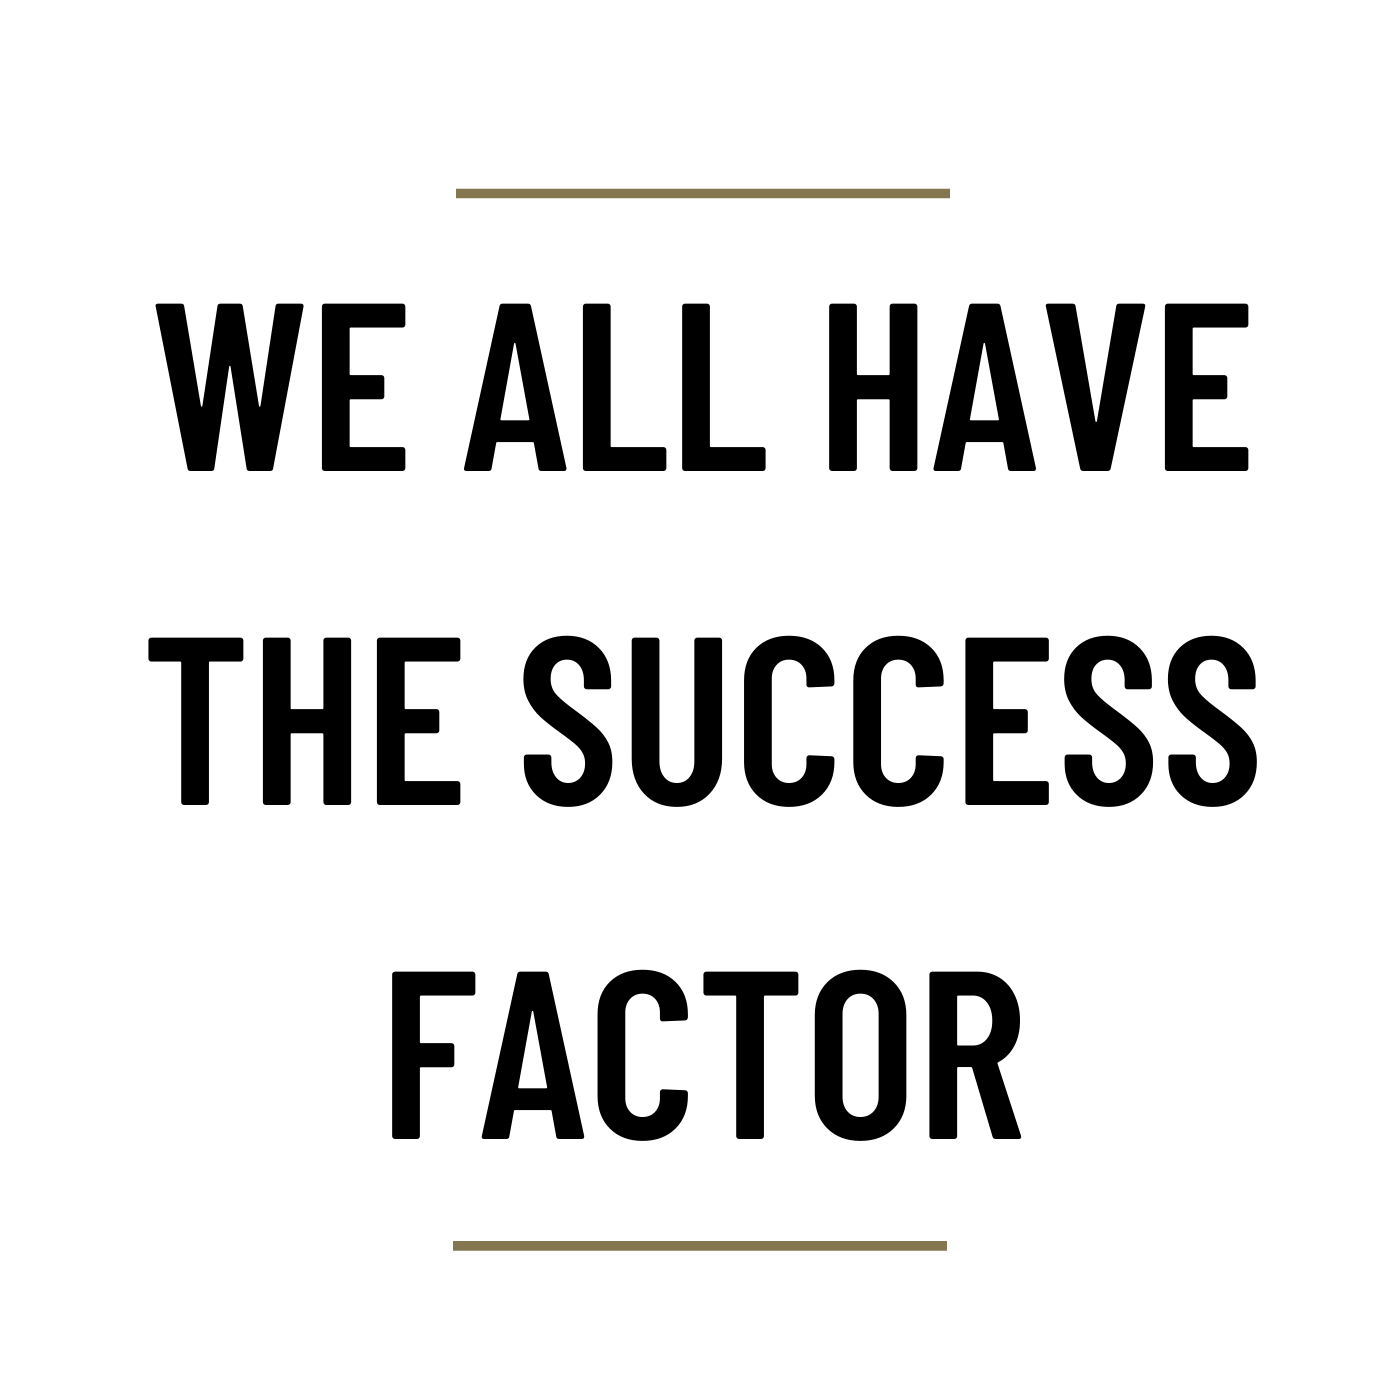 MS72 - We all have the Success Factor